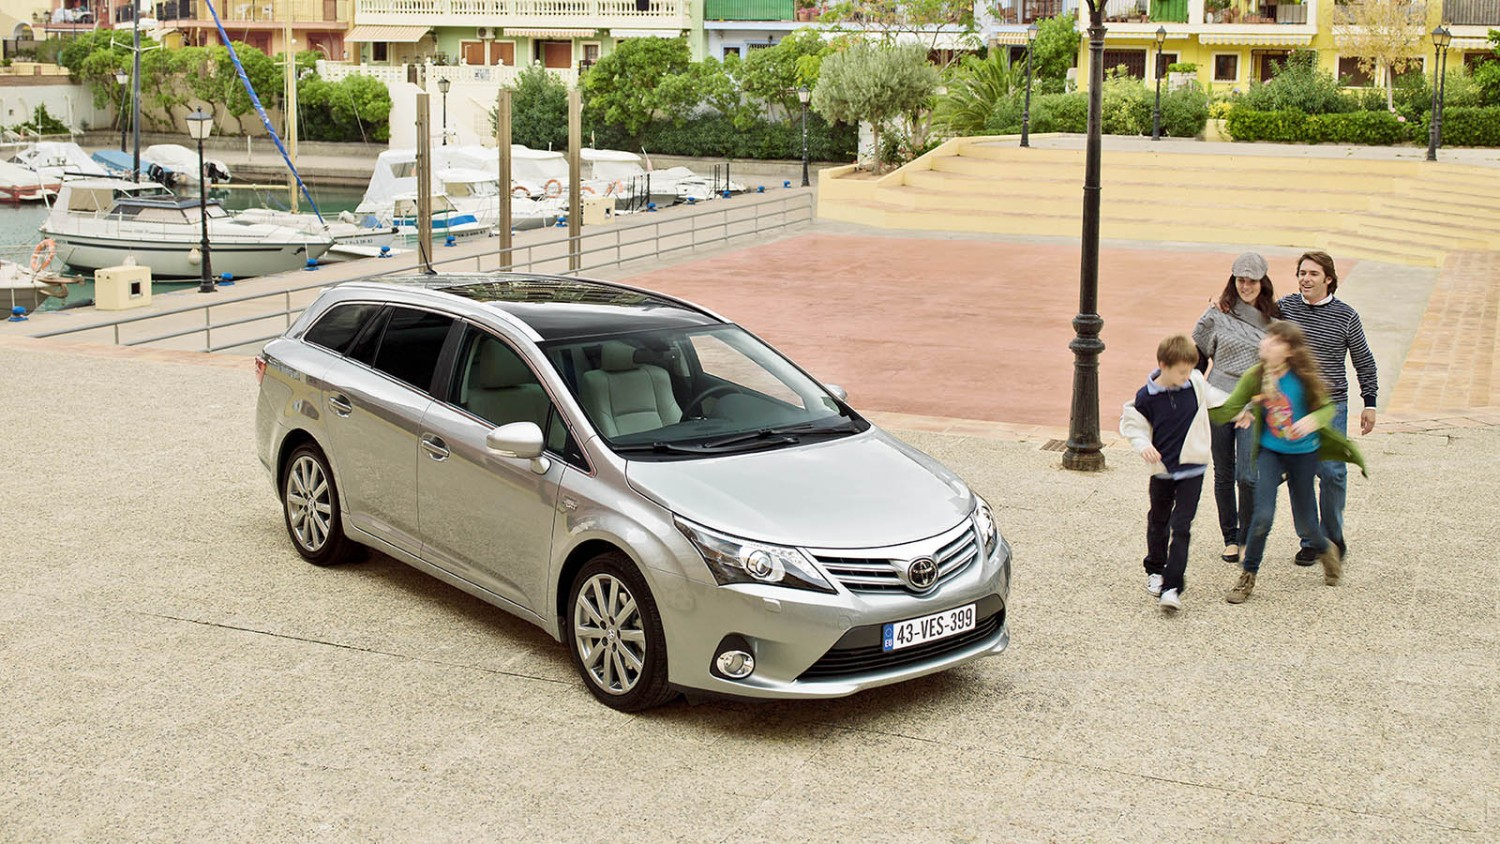 toyota-articles-editorial-jdpower-focus_tcm-2015-167330